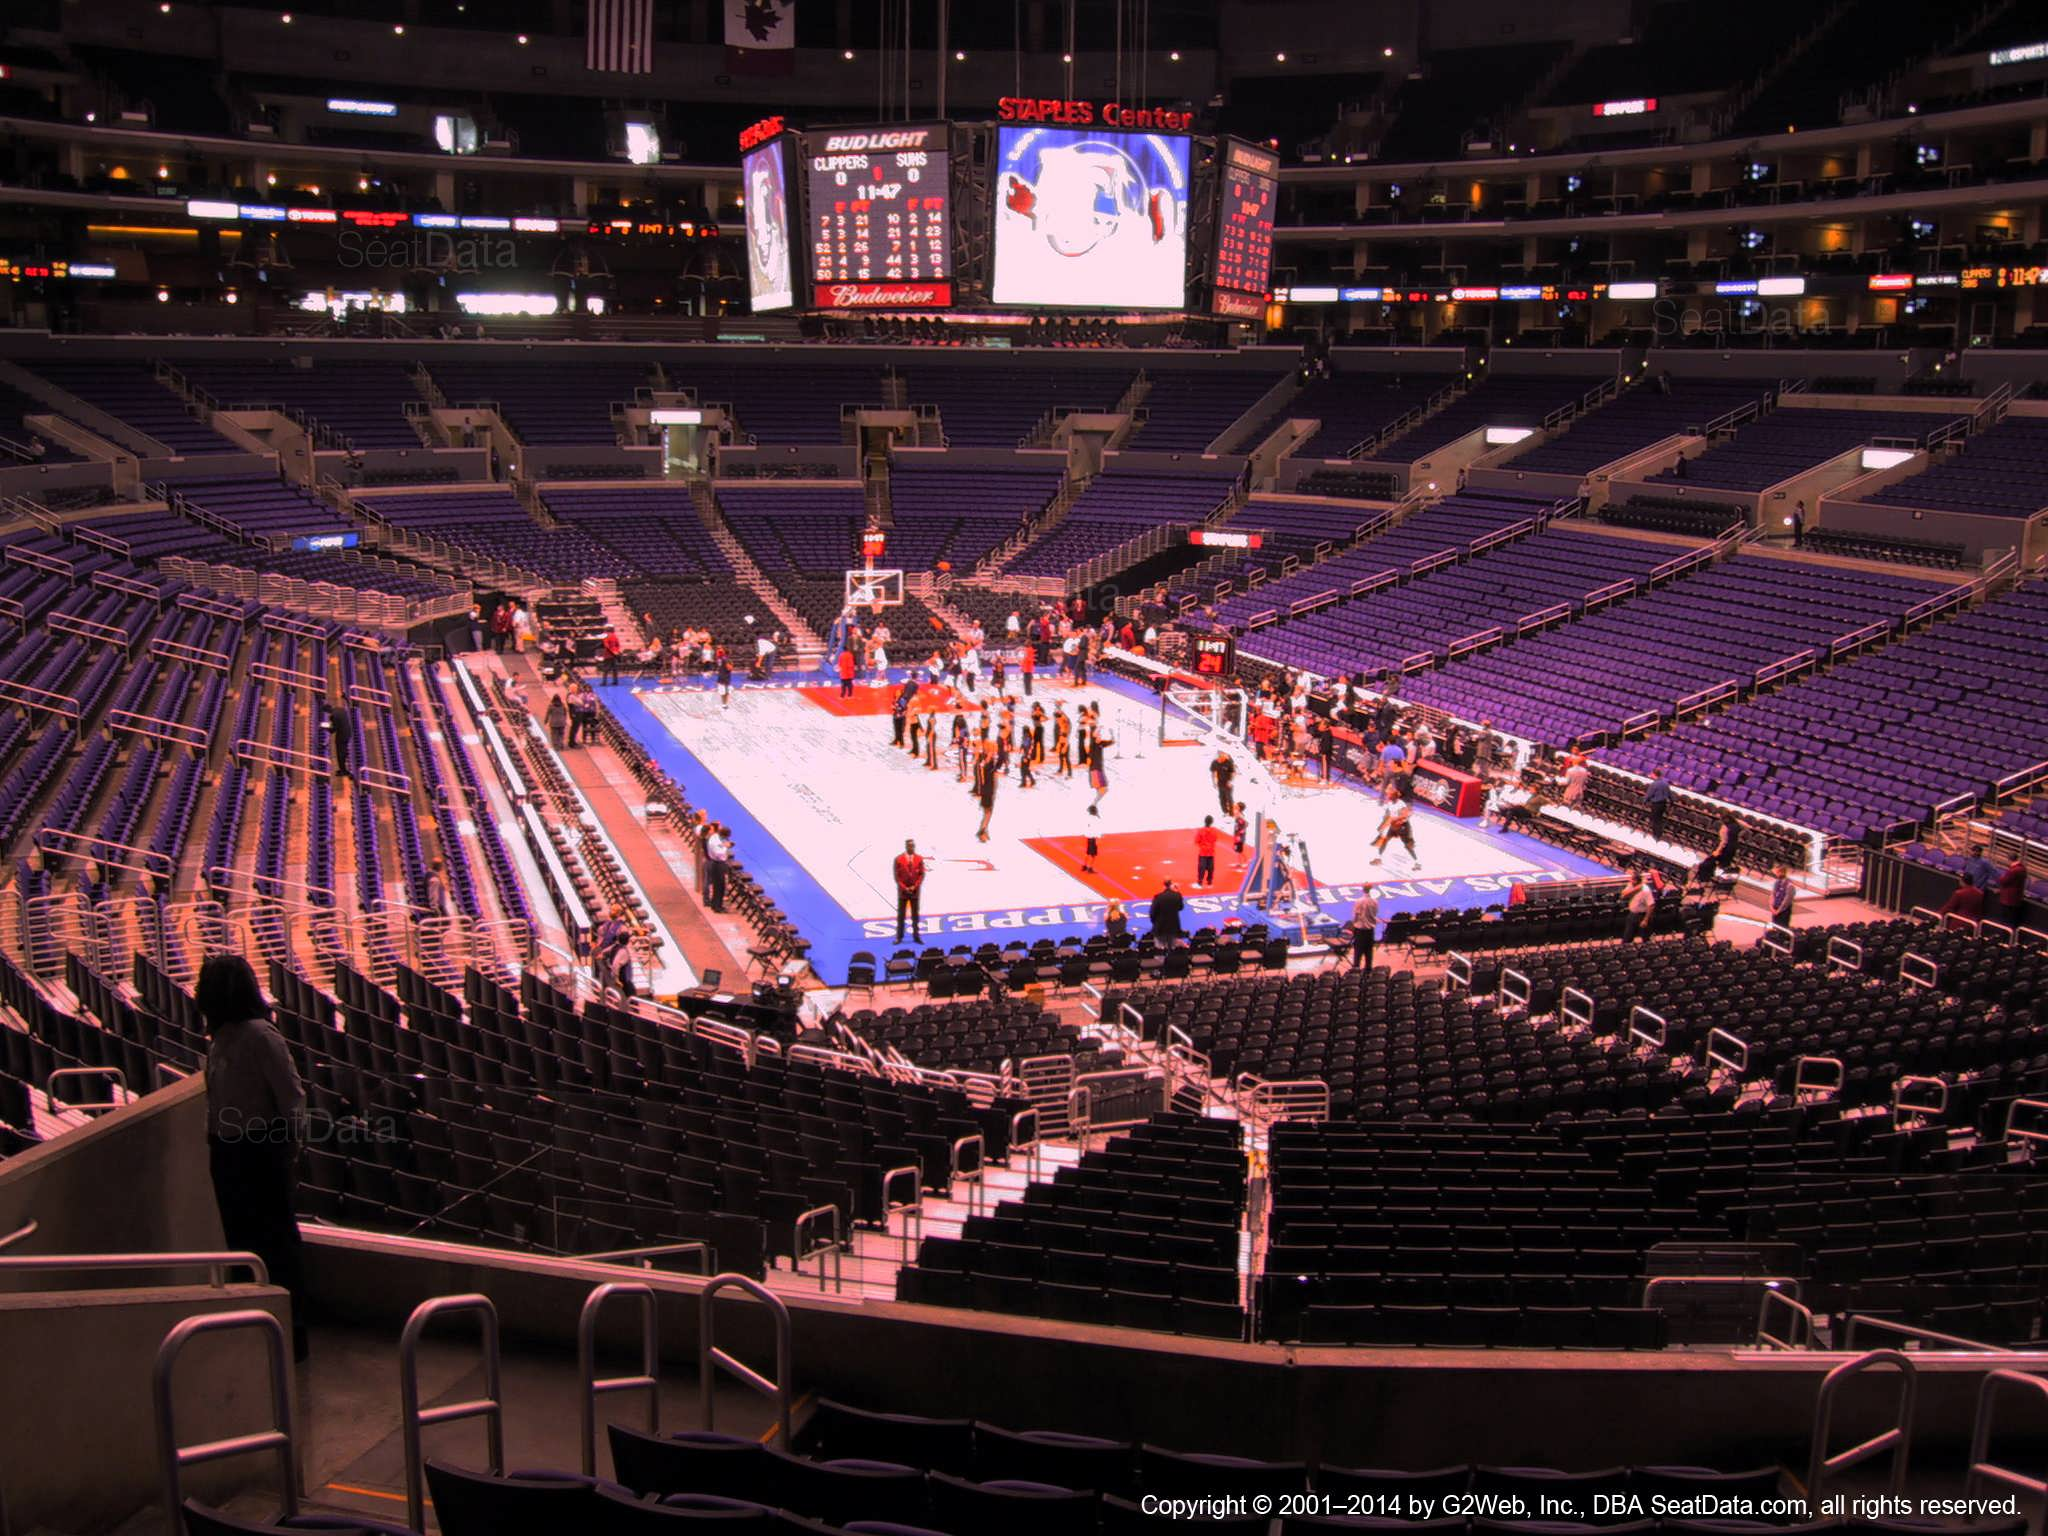 Staples Center Section 209 - Clippers/Lakers ...